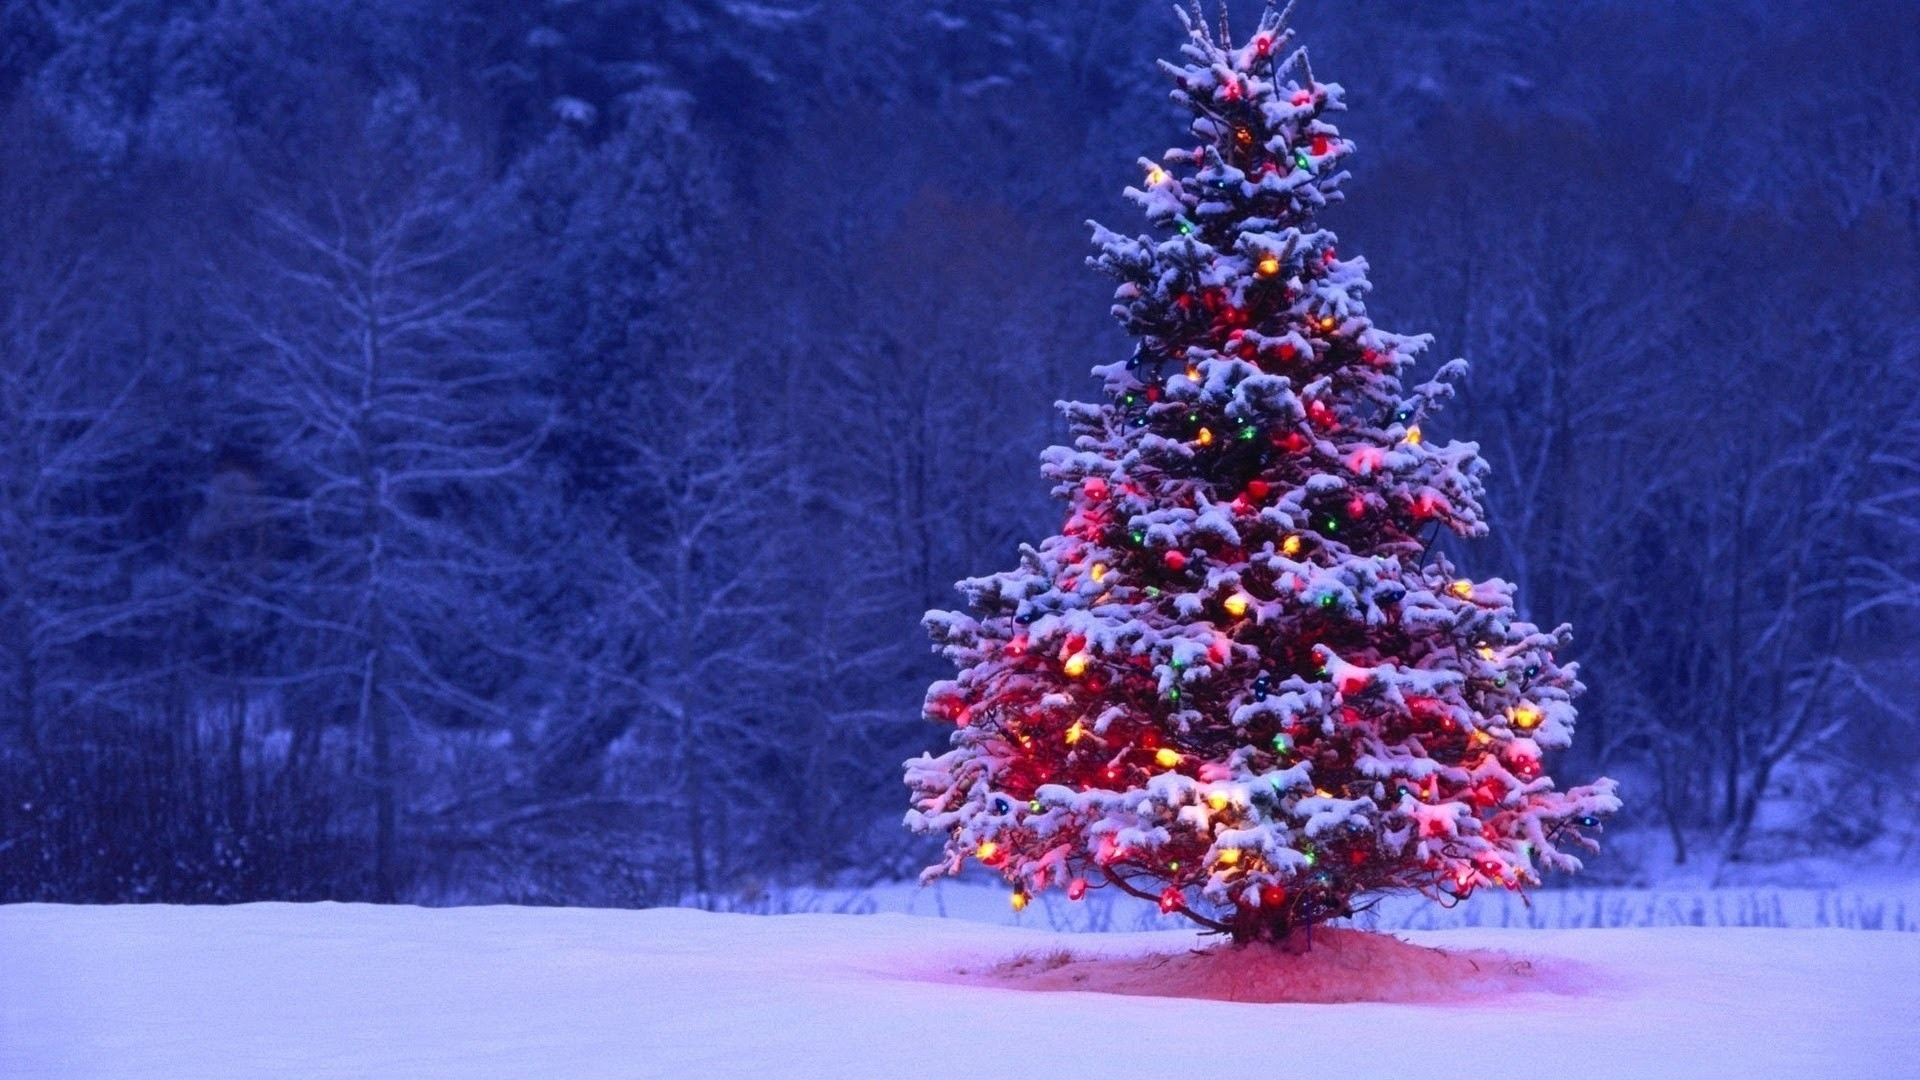 10 New Hd Wallpaper 1920X1080 Christmas FULL HD 1920×1080 For PC Background